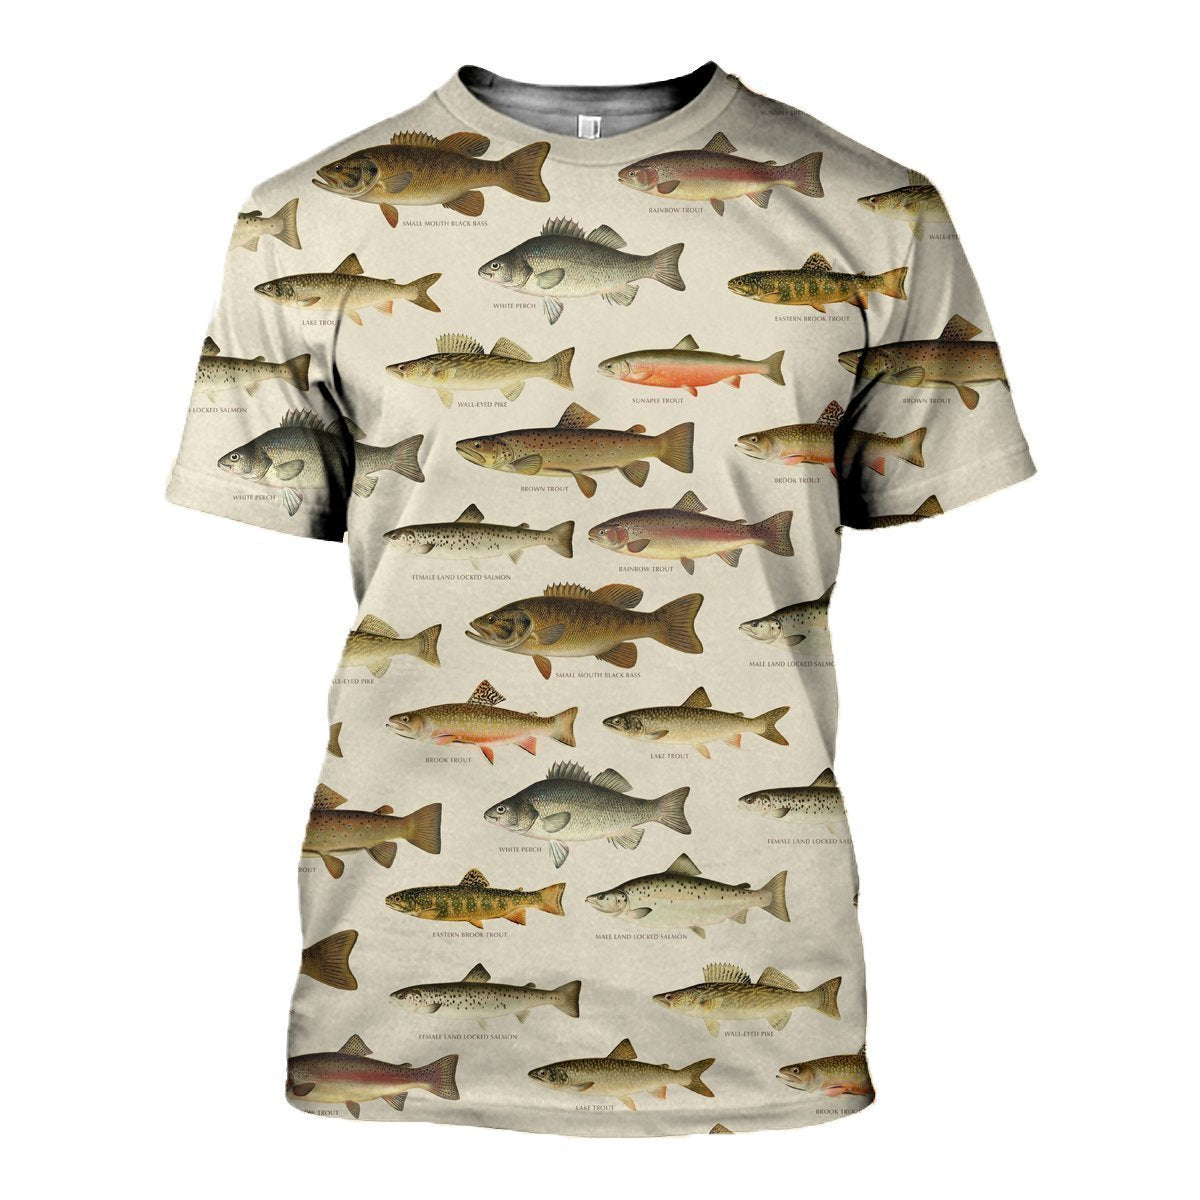 3D All Over Printed North American Fishes Shirts-Apparel-HP Arts-T-Shirt-S-Vibe Cosy™